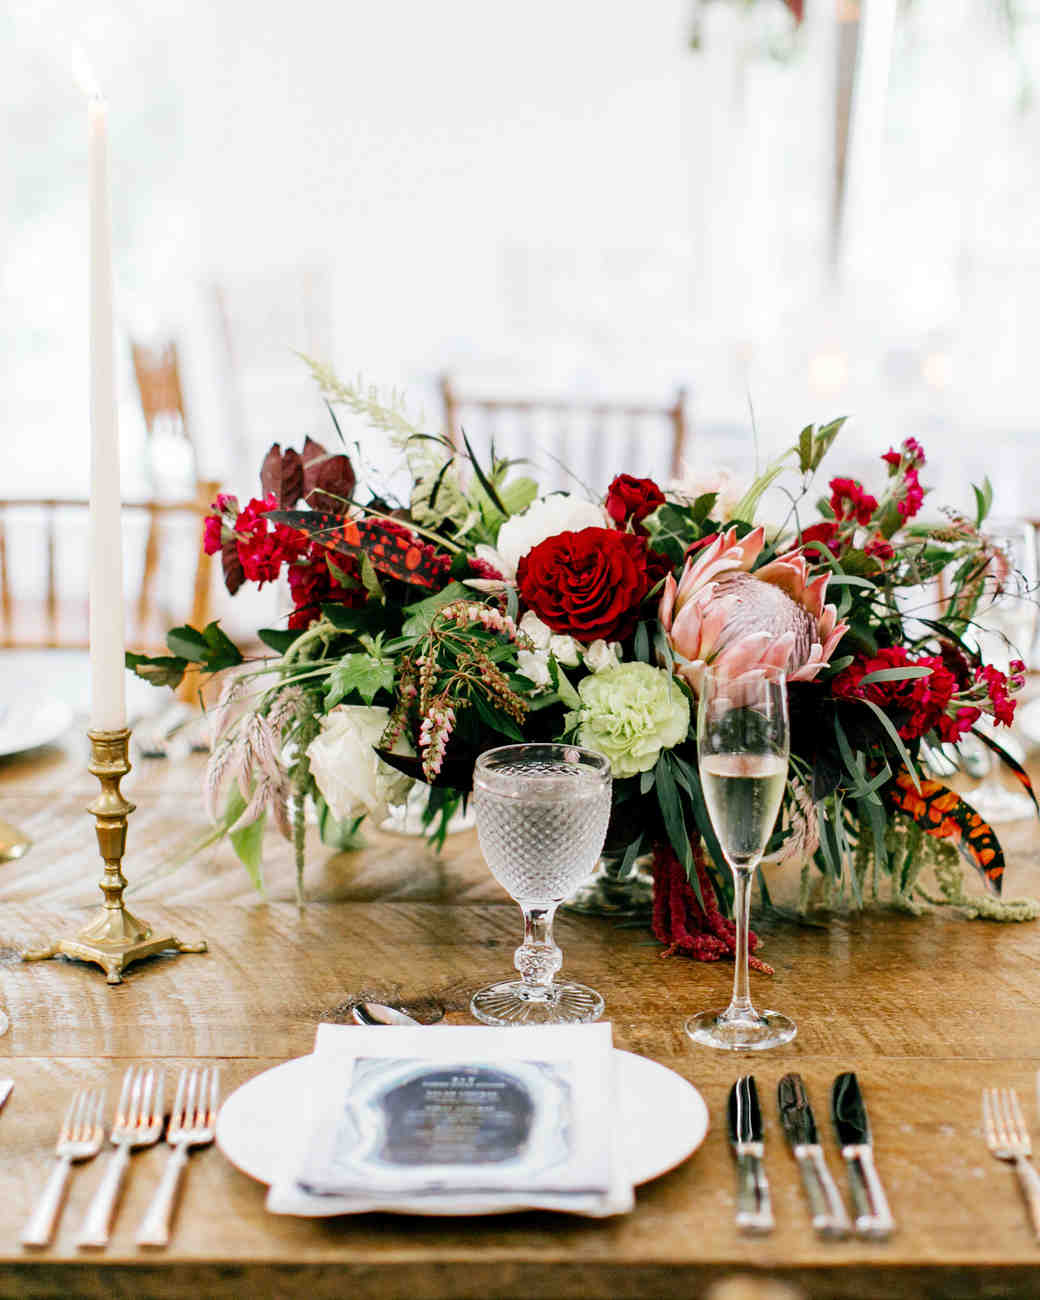 Flowers For Wedding Table Centerpieces: A Chinese-Inspired Wedding With Bohemian Touches